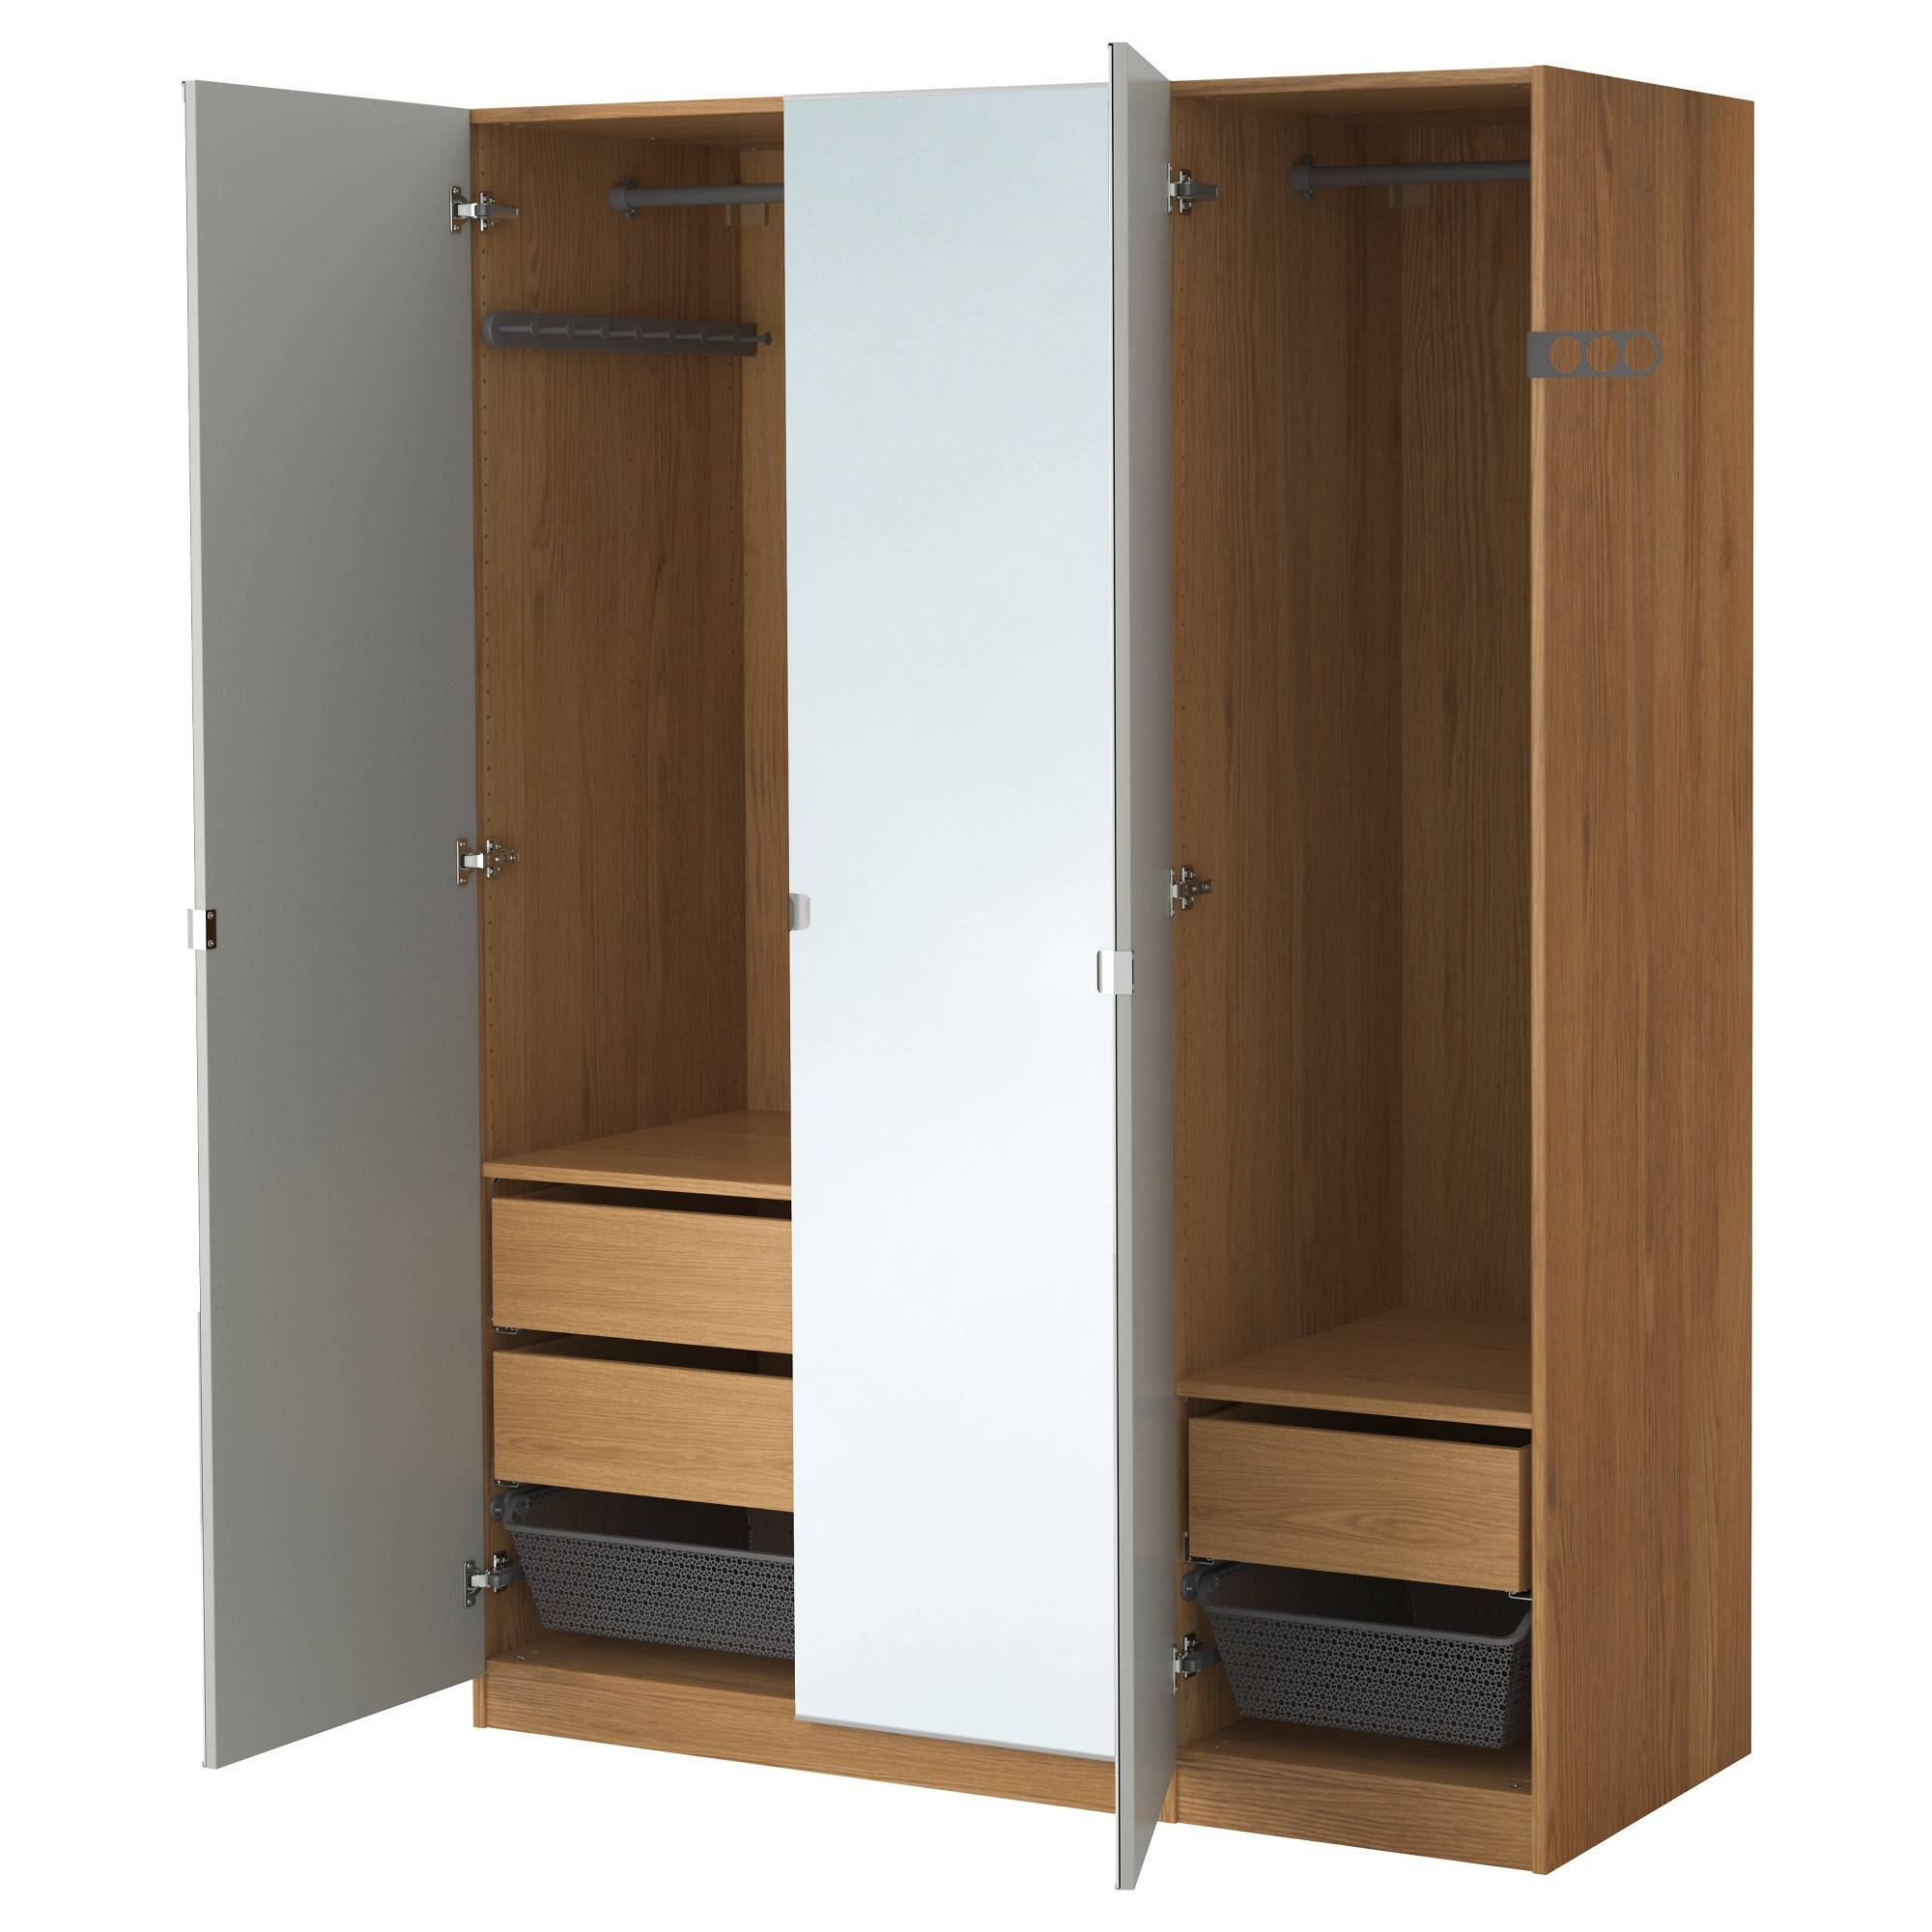 Wardrobes | Ikea with regard to One Door Mirrored Wardrobes (Image 13 of 15)